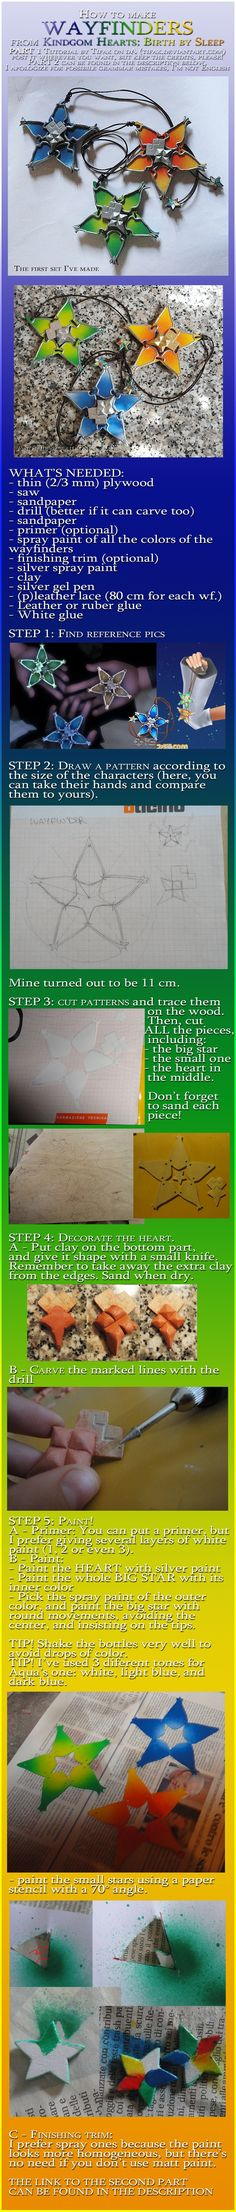 Kingdom Hearts: Wayfinders tutorial 1/2 by Tifax on deviantART